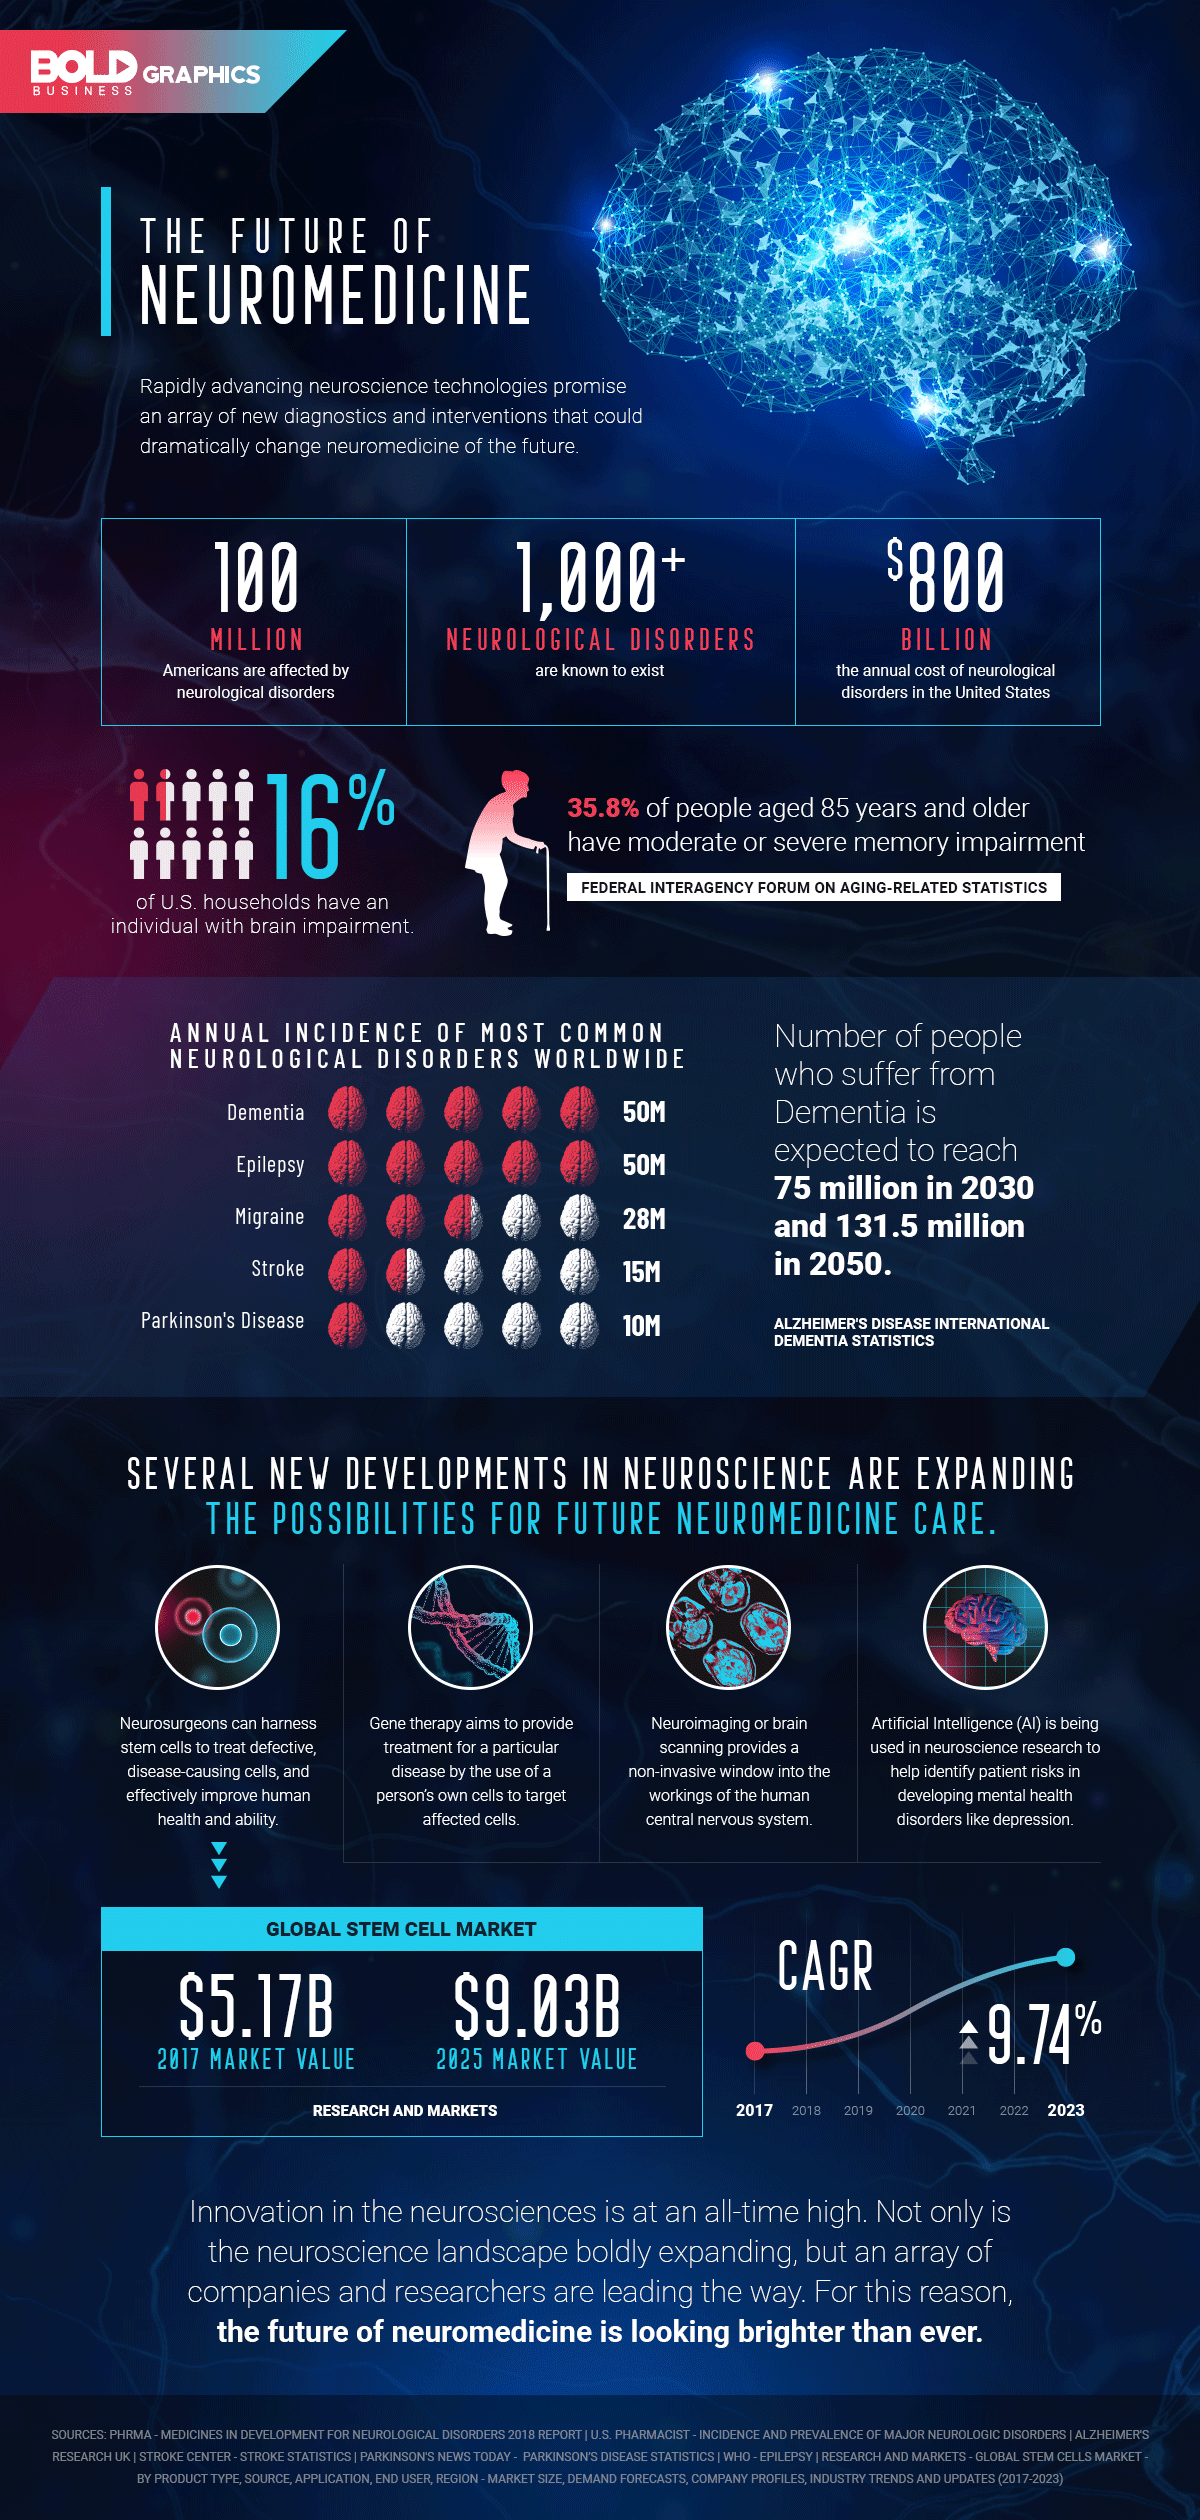 Bold Graphics: the future of neuromedicine infographics